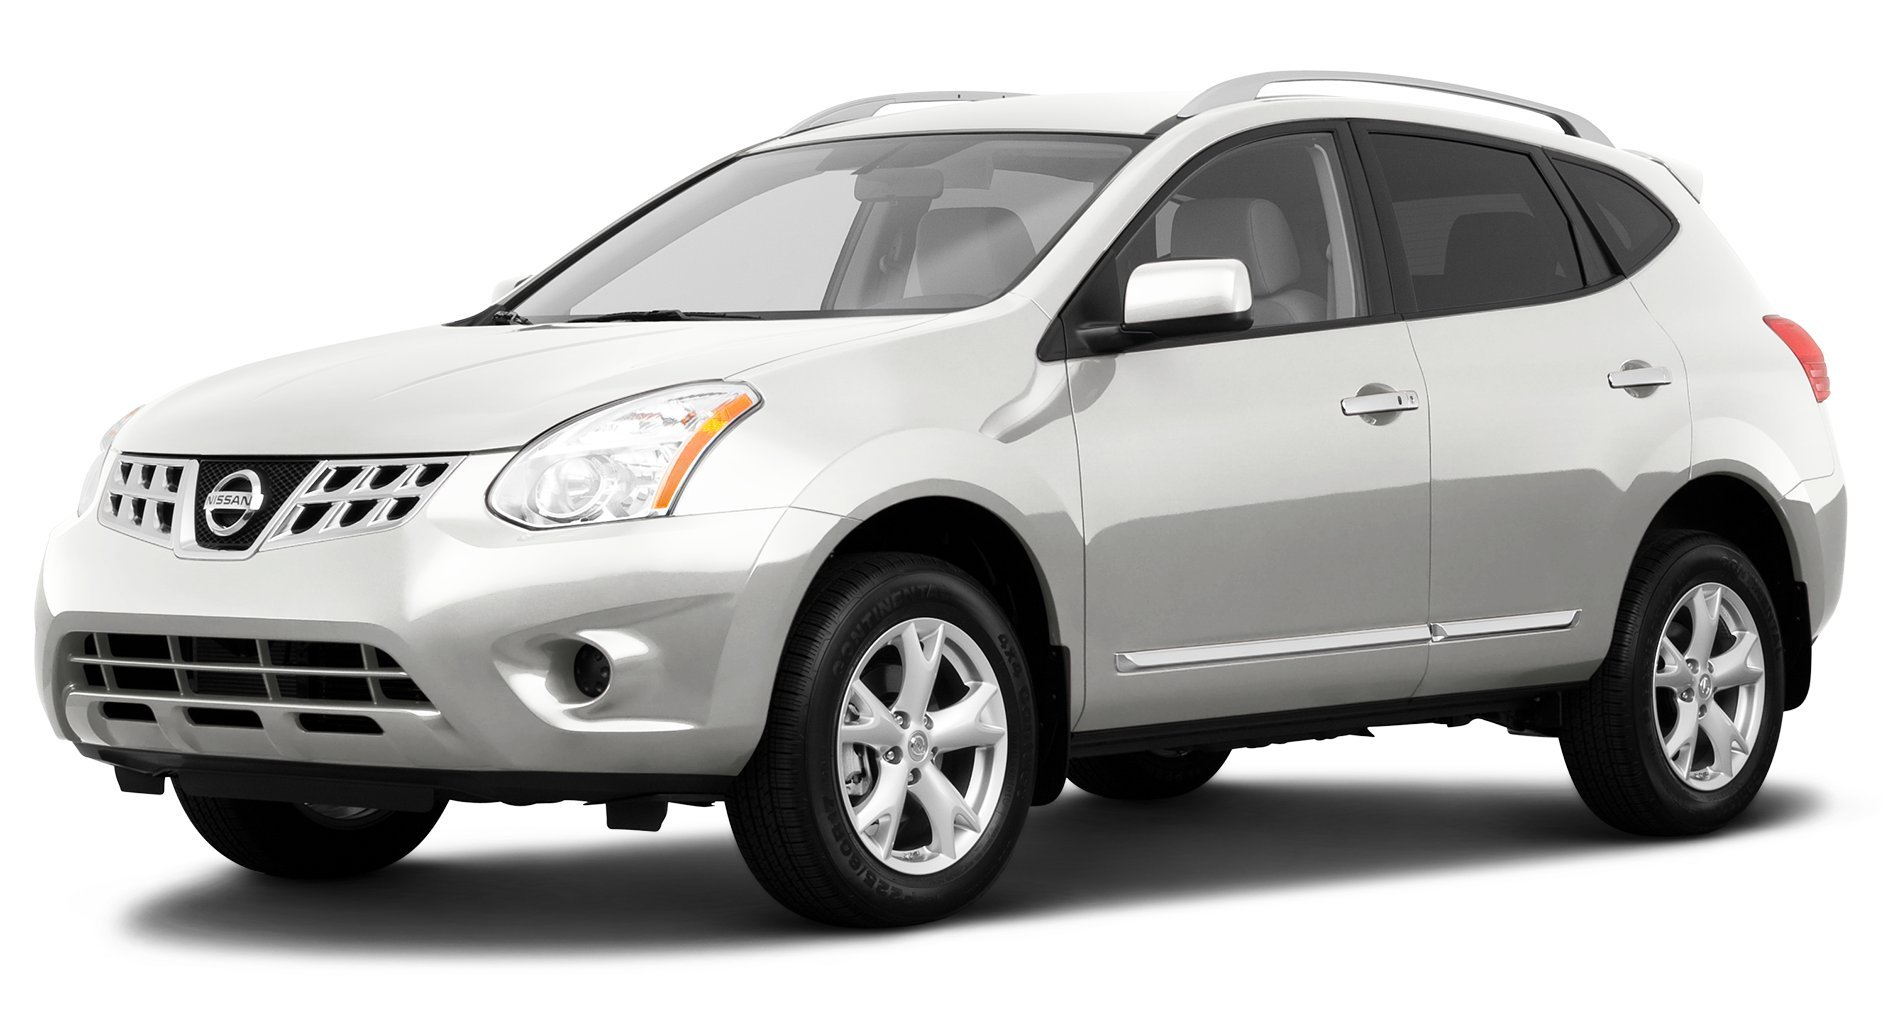 2011 nissan rogue reviews images and specs vehicles. Black Bedroom Furniture Sets. Home Design Ideas